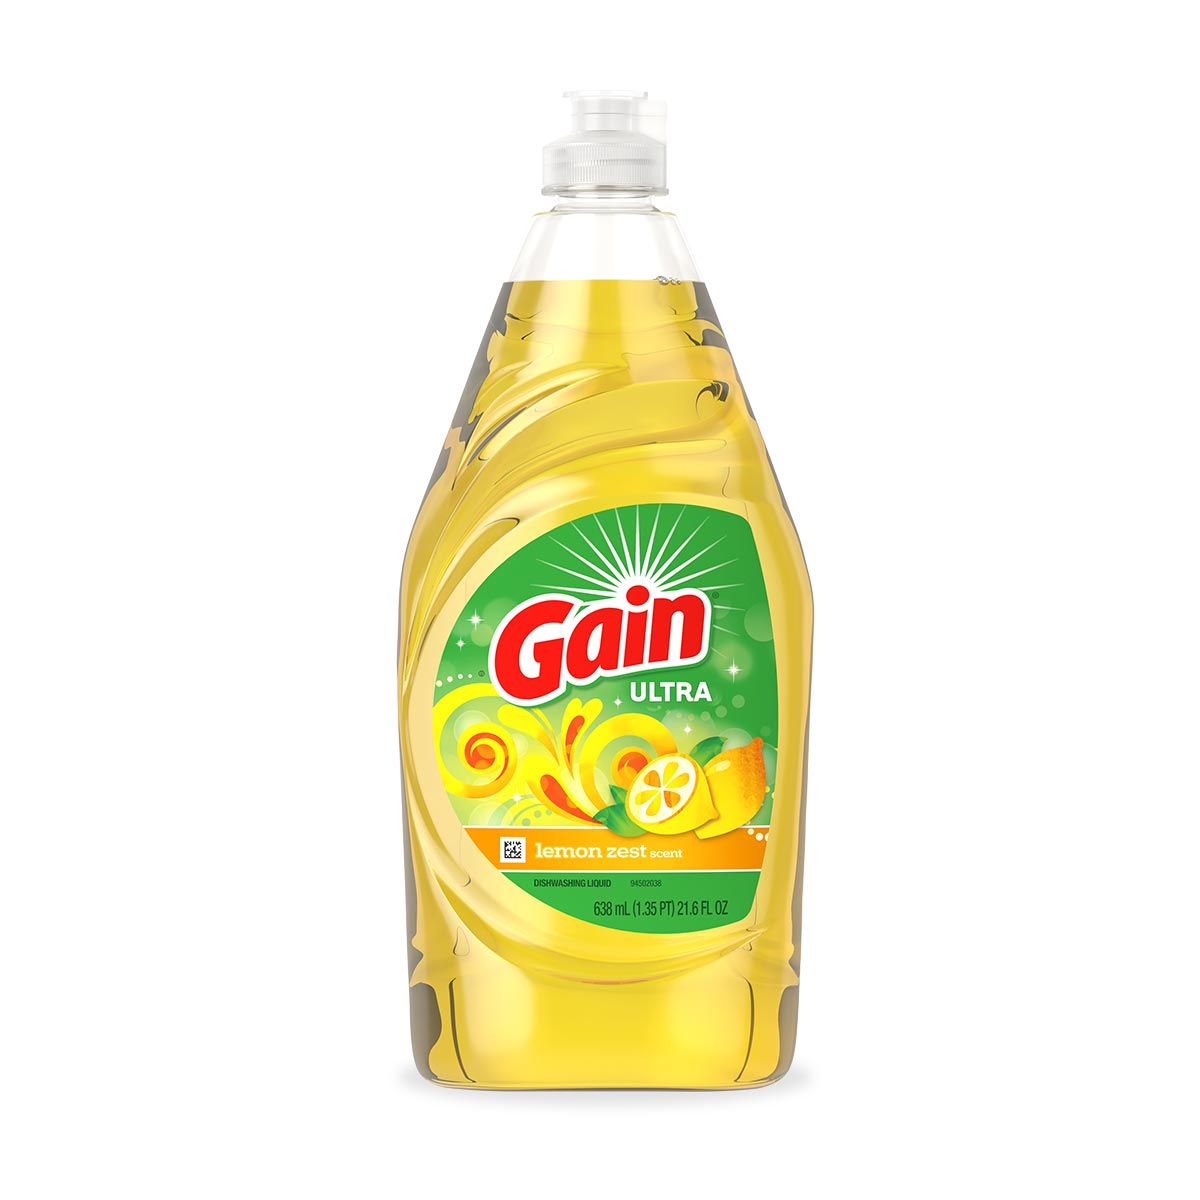 Gain Antibacterial Lemon Zest Liquid Dish Soap